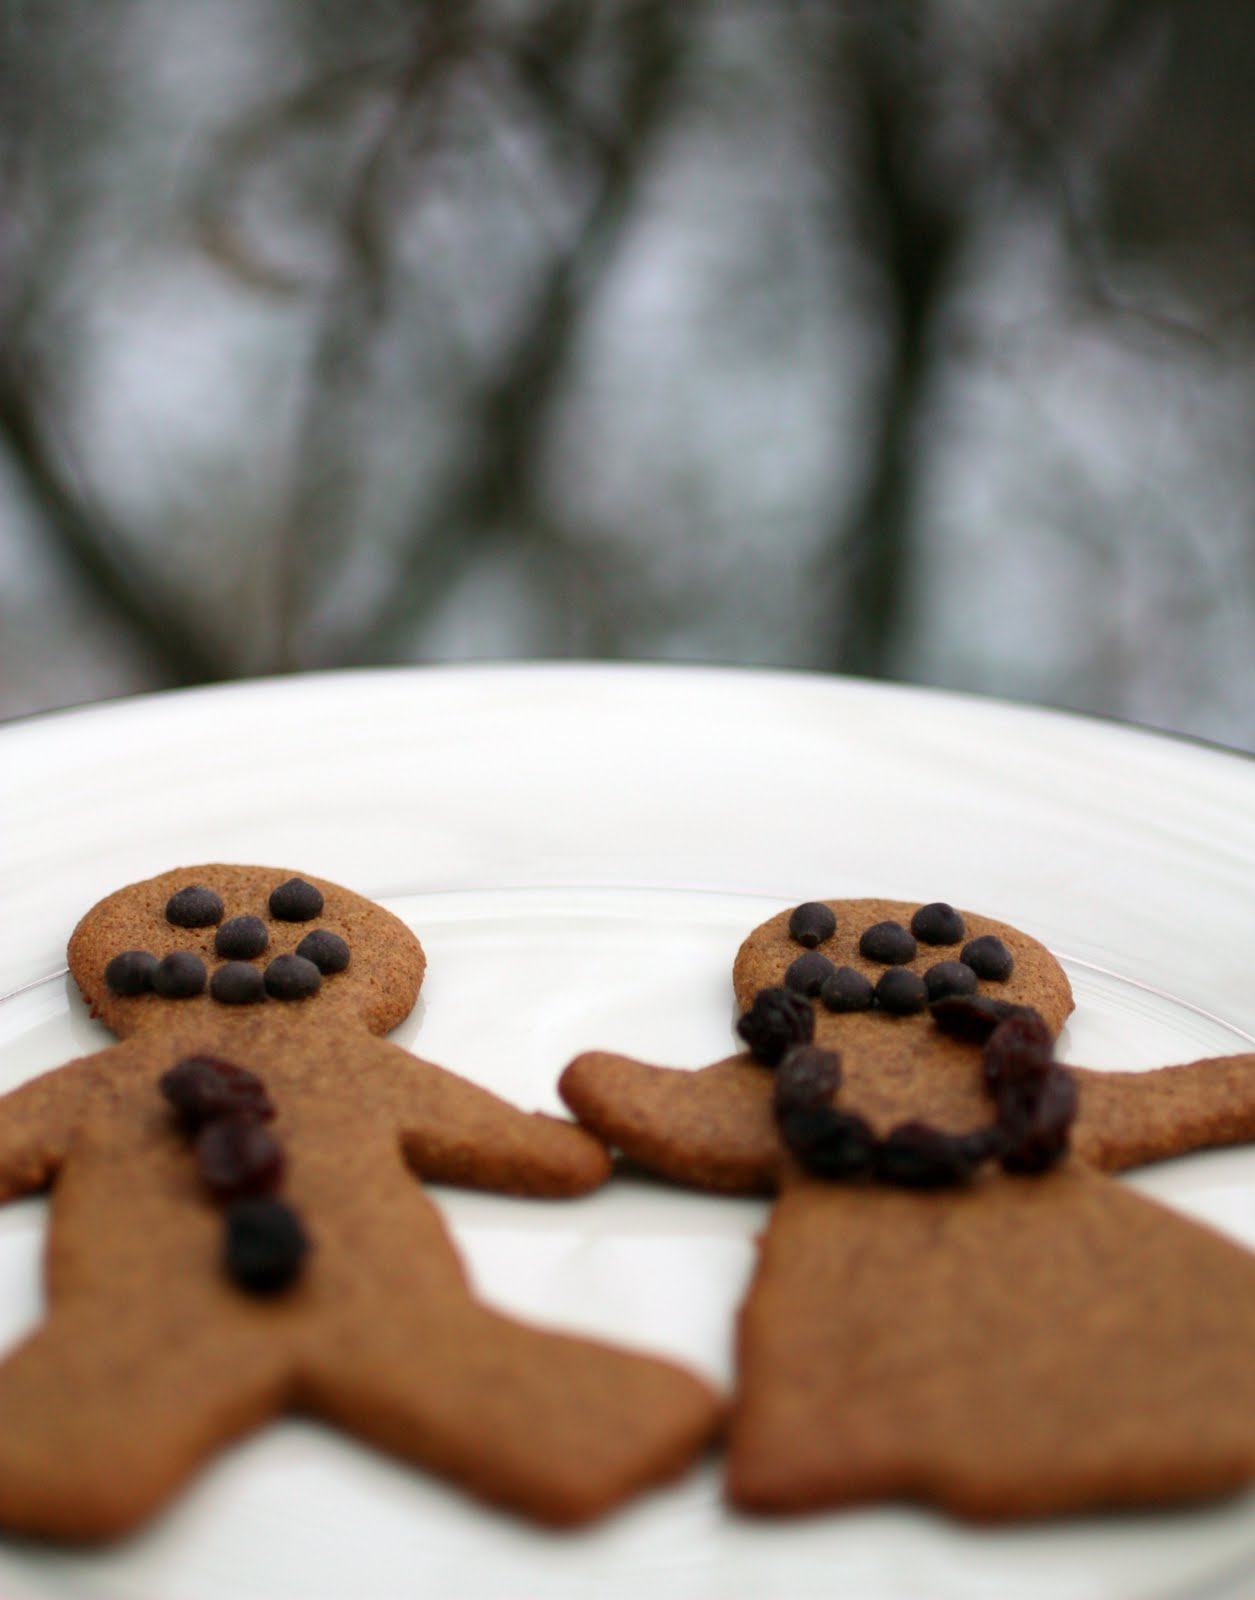 Paleo Christmas Cookies Grain Free Gingerbread Men Primal Palate